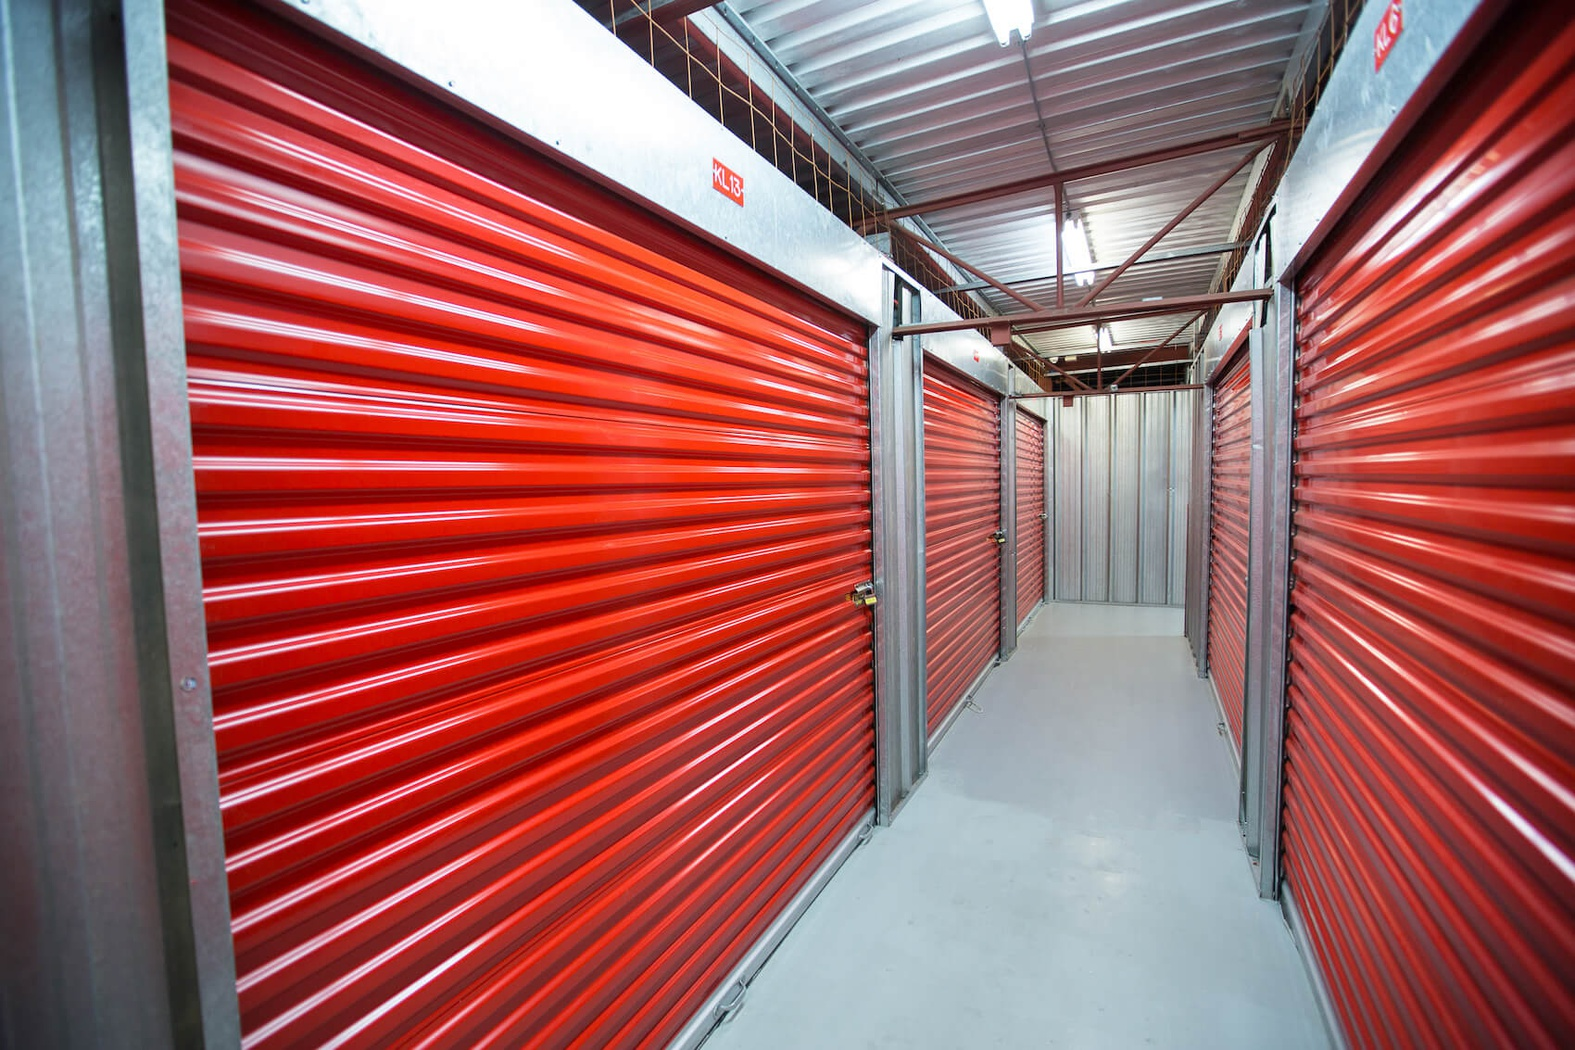 Rent Edmonton storage units at 9944 33 Ave NW. We offer a wide-range of affordable self storage units and your first 4 weeks are free!